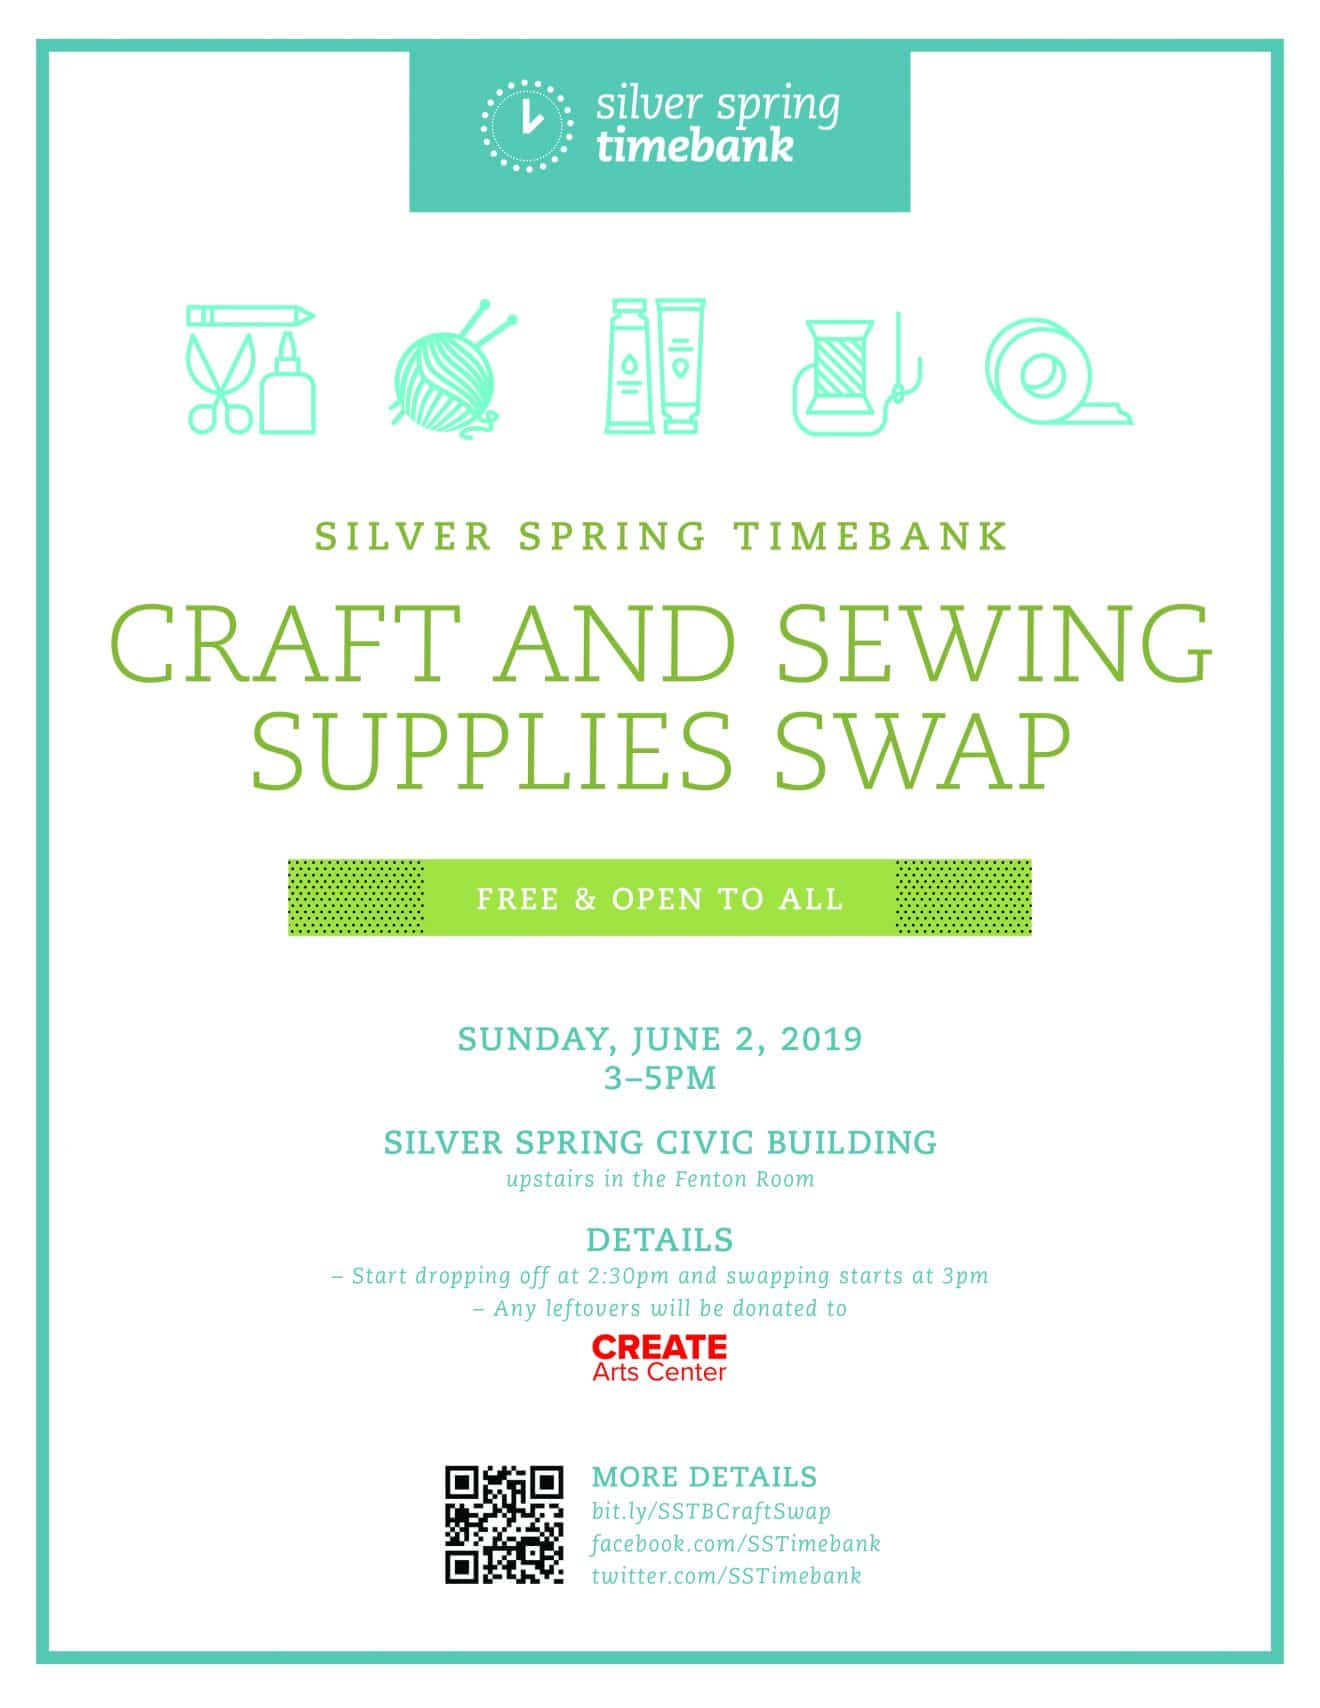 Craft and Sewing Supplies Swap